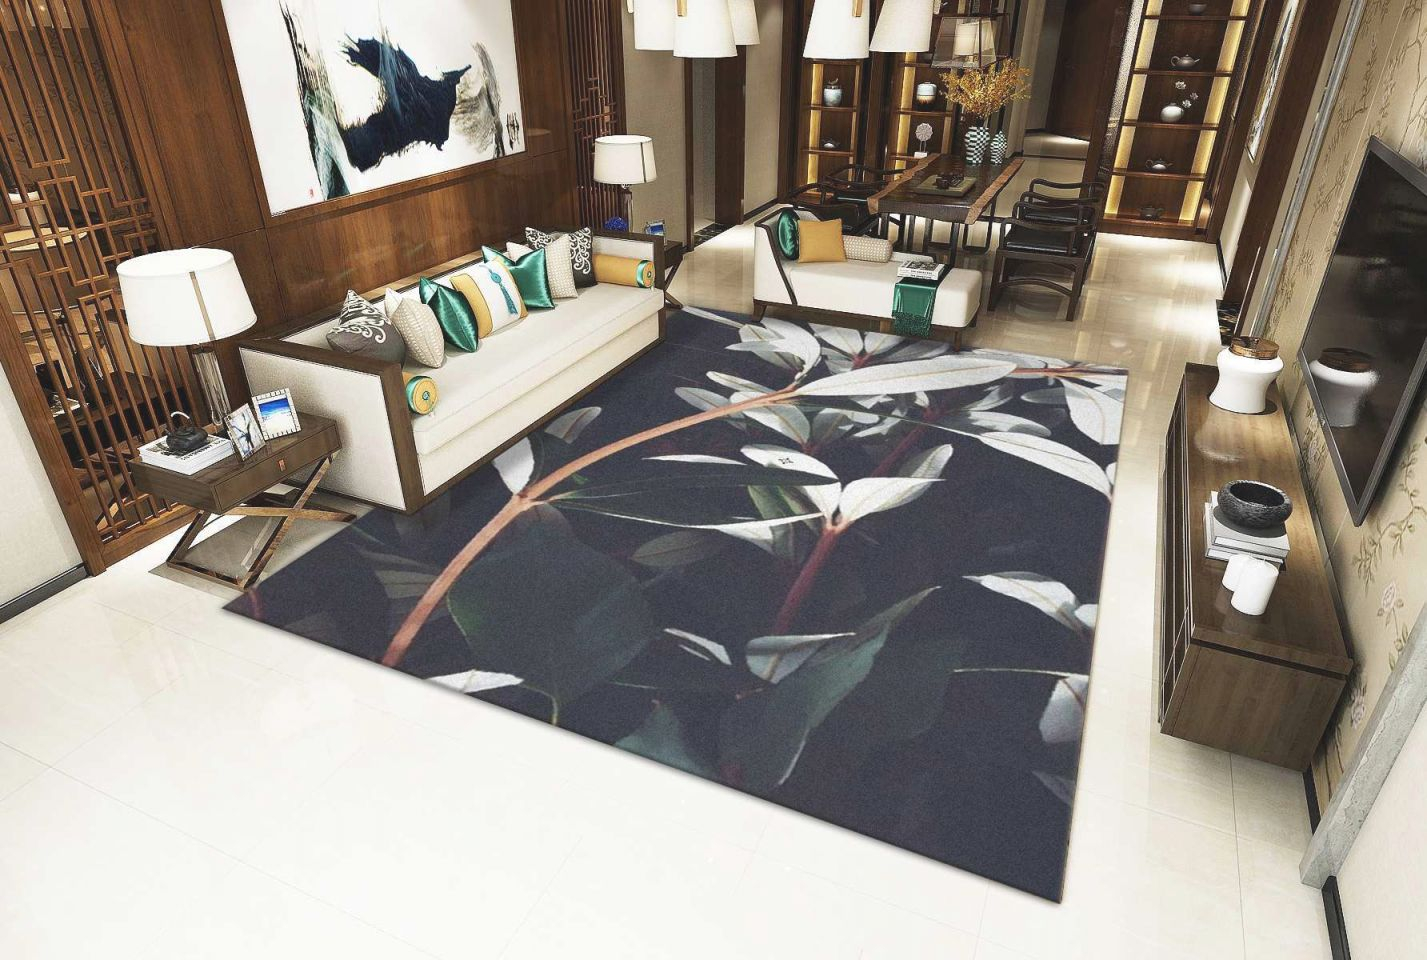 Floral Pattern European Living Room Big Area Decoration Carpet Rugs For Bedroom Soft House Door Mat Coffee Table Carpe Flooring Over Carpet Shaw in Big Area Rugs For Living Room